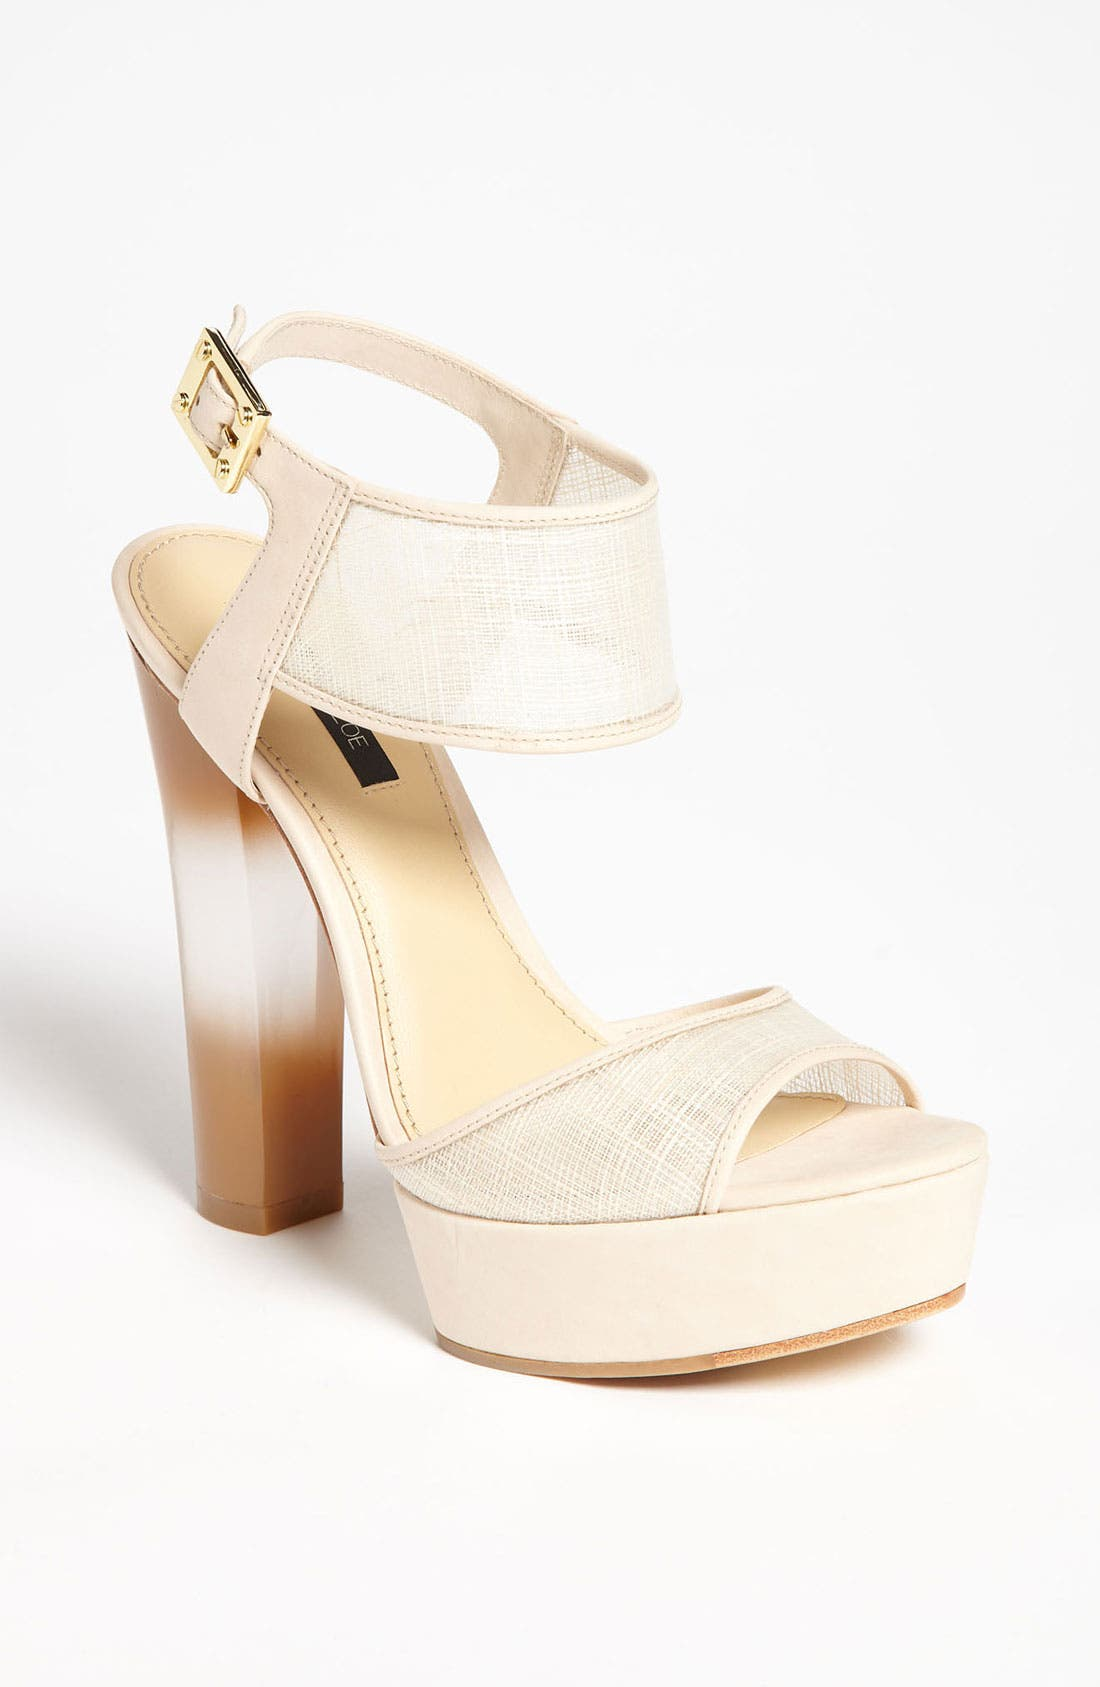 Alternate Image 1 Selected - Rachel Zoe 'Lexi' Sandal